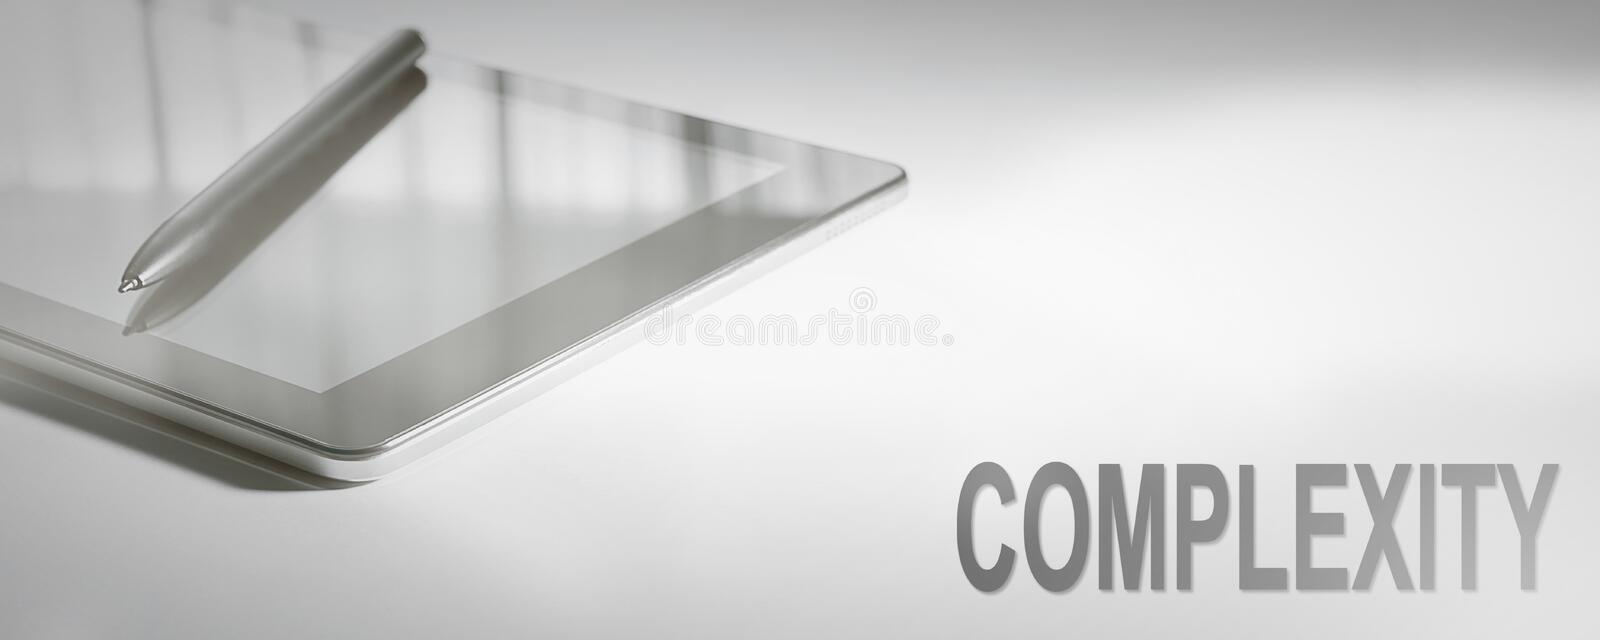 COMPLEXITY Business Concept Digital Technology. Graphic Concept stock image